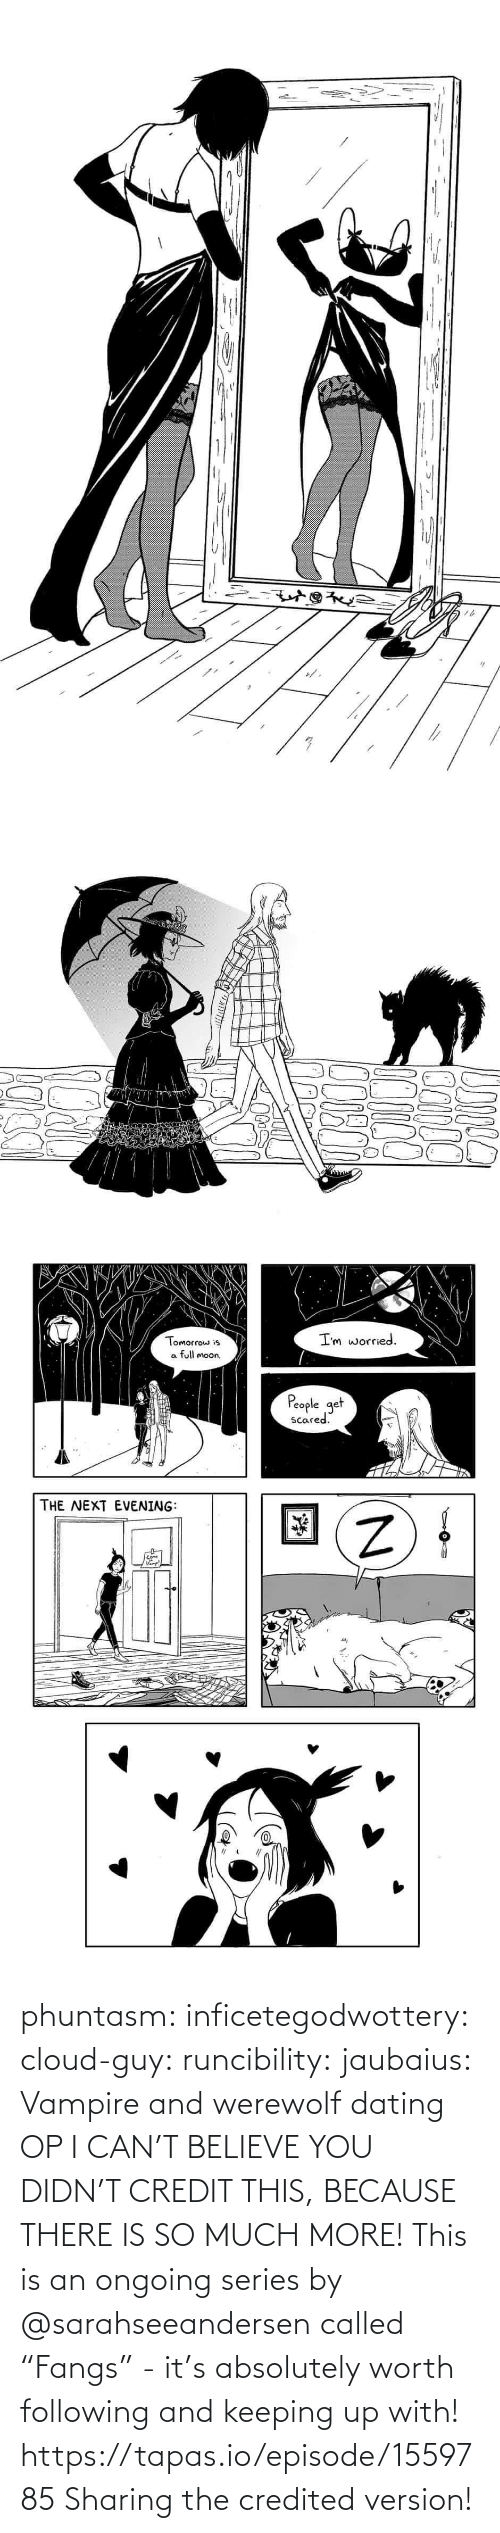 "Cloud: phuntasm: inficetegodwottery:  cloud-guy:   runcibility:  jaubaius:   Vampire and werewolf dating   OP I CAN'T BELIEVE YOU DIDN'T CREDIT THIS, BECAUSE THERE IS SO MUCH MORE! This is an ongoing series by @sarahseeandersen called ""Fangs"" - it's absolutely worth following and keeping up with! https://tapas.io/episode/1559785    Sharing the credited version!"